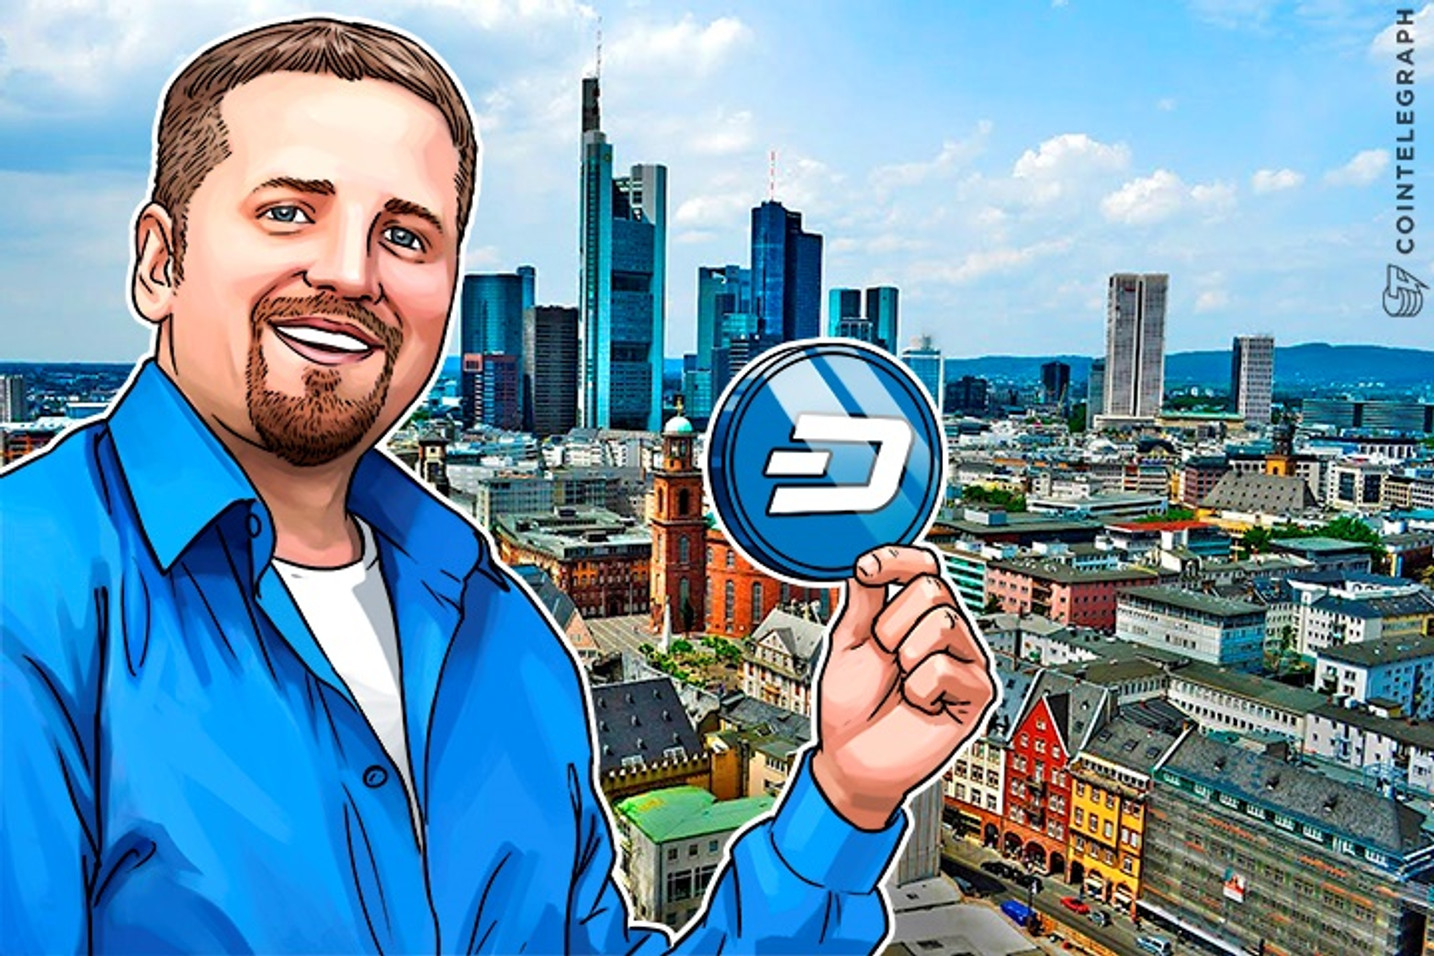 Free Republic of Liberland Values Bitcoin, But Ready to Move on to Dash